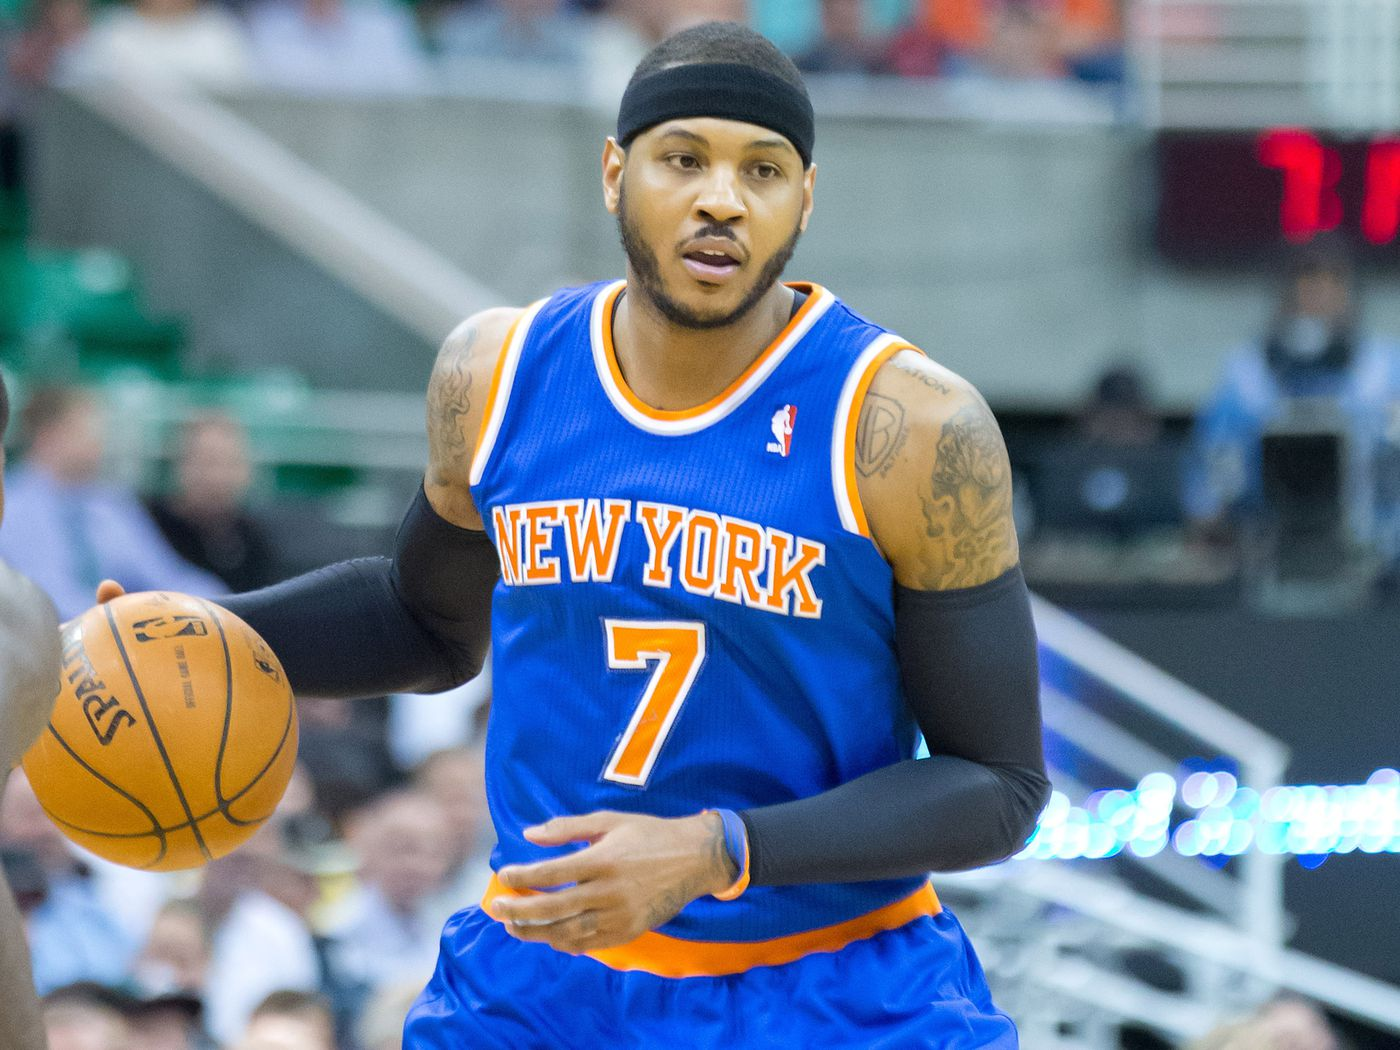 67be97b594c New York Knicks 2014-15 Preview - Turning squares into a triangle -  CelticsBlog